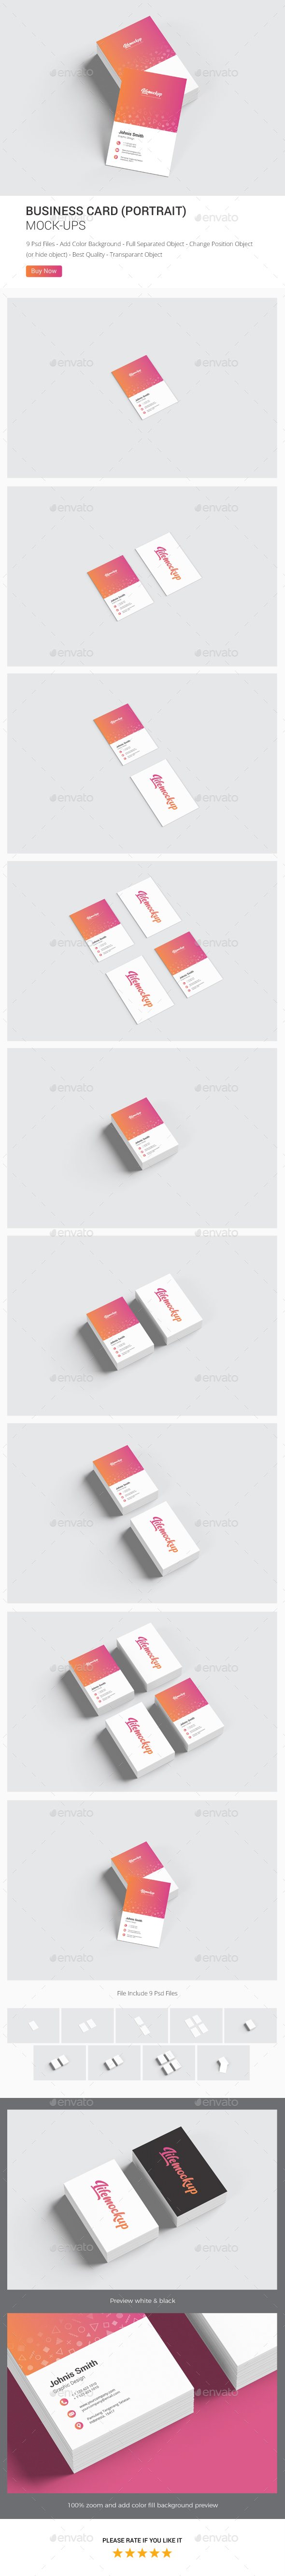 Business Card Portrait Mockup - Business Cards Print